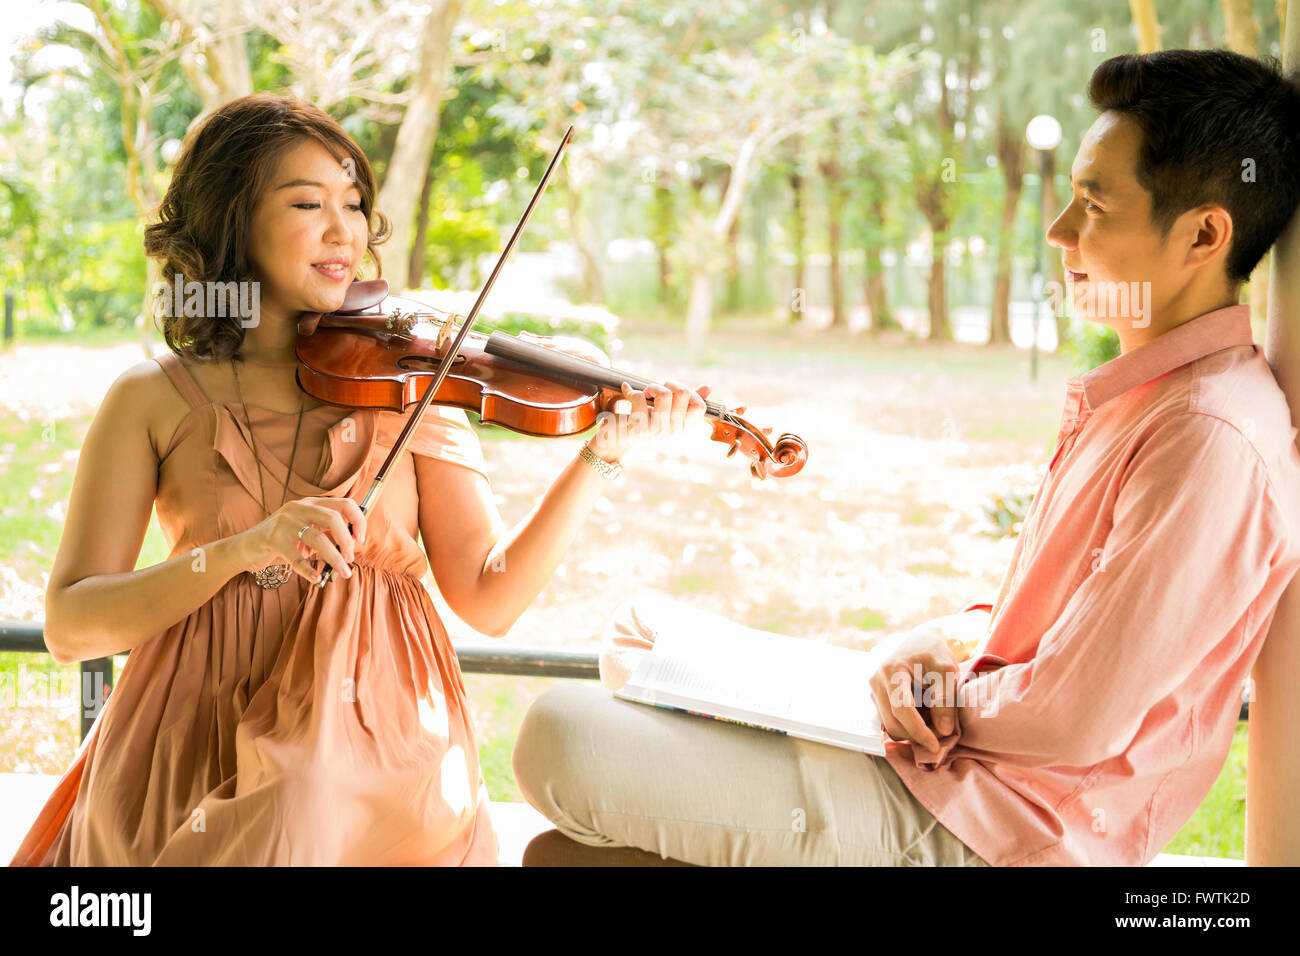 Young woman playing violin with her boyfriend in garden - Stock Image